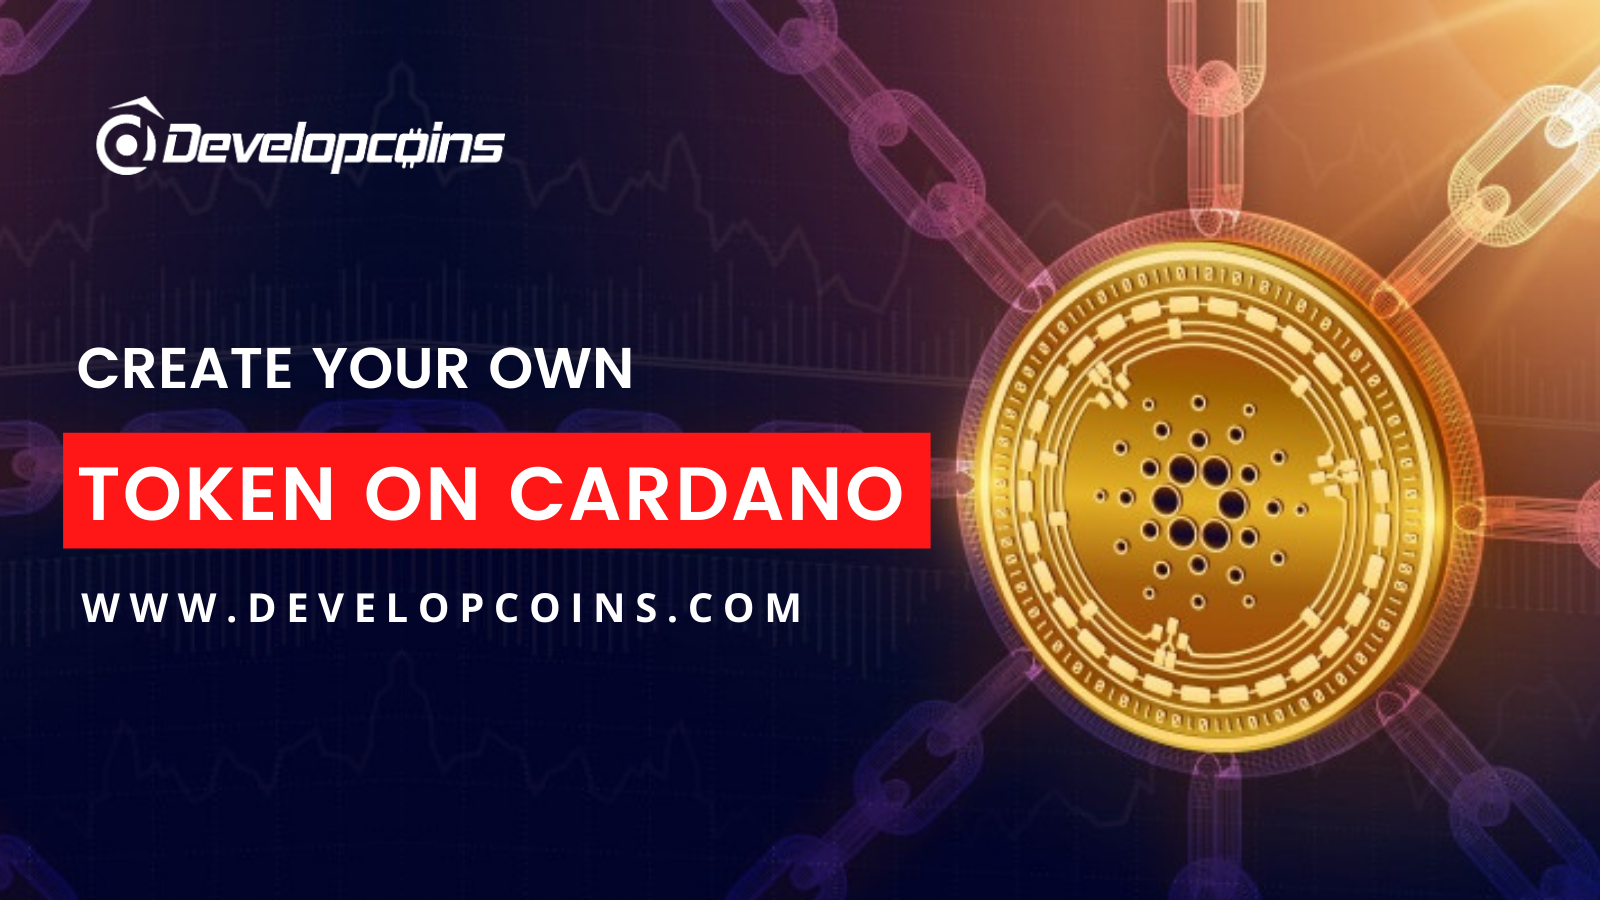 How to Create Your Own Token on Cardano Blockchain?